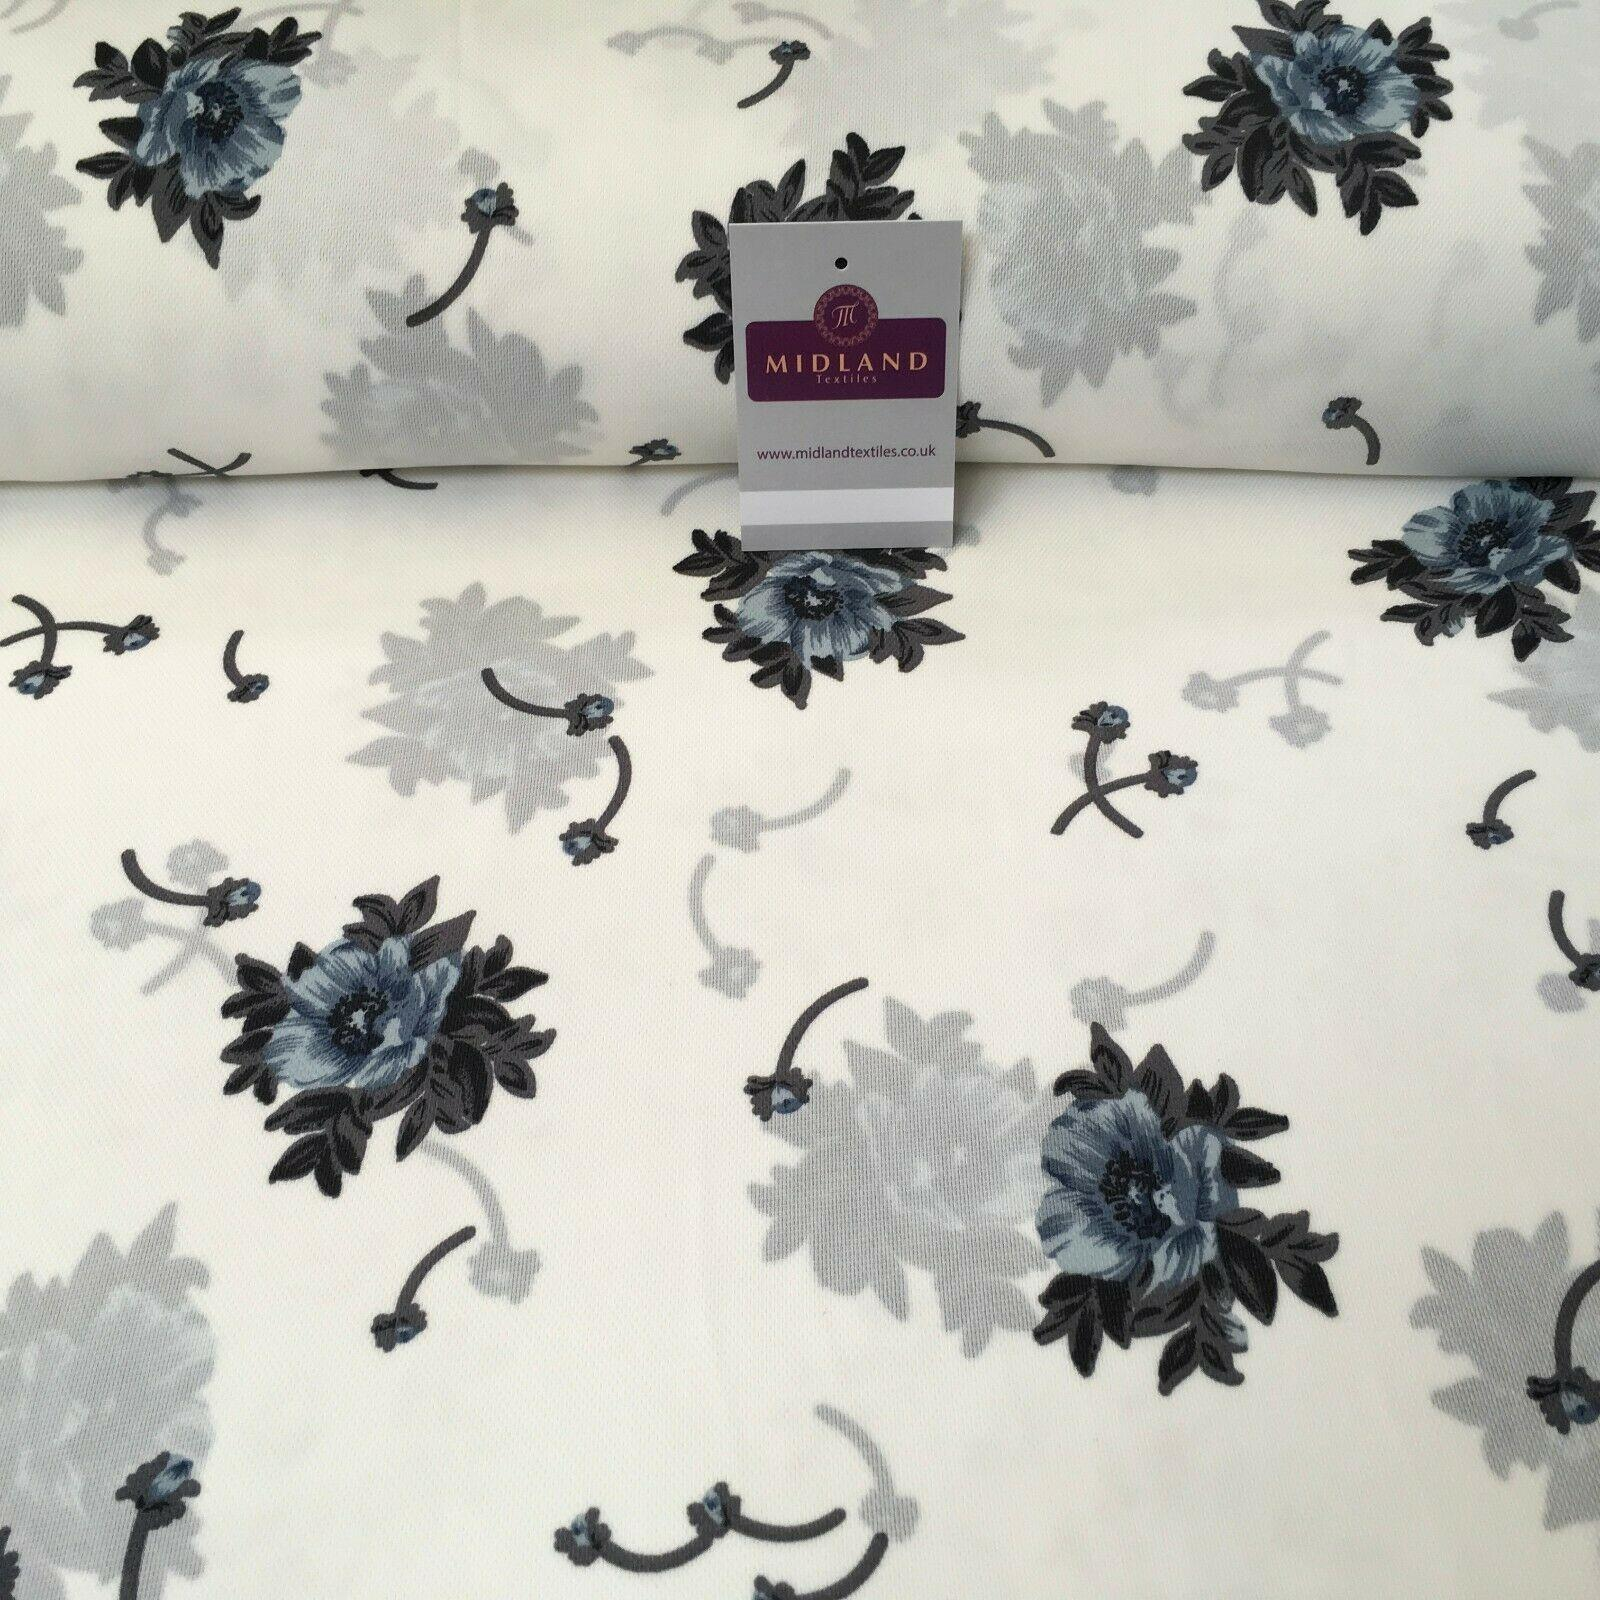 Ivory & Grey floral soft Georgette twist voile Dress Fabric 147cm MK1185-10